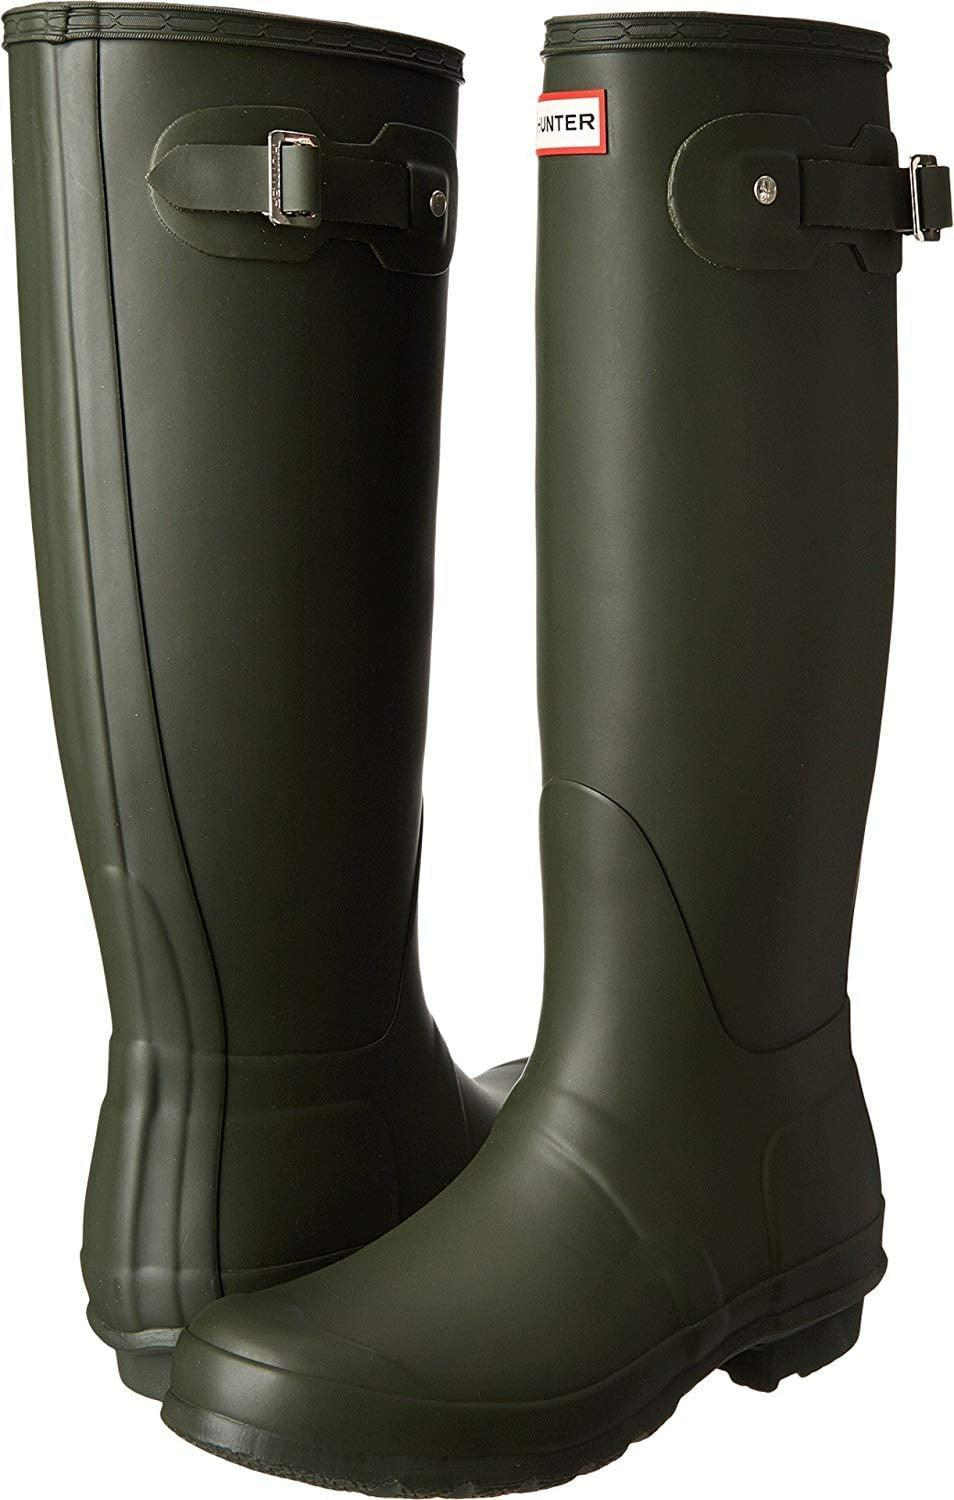 """<p>Winter storms are no match for these iconic <a href=""""https://www.popsugar.com/buy/Hunter-Women-Original-Tall-Rain-Boots-506604?p_name=Hunter%20Women%27s%20Original%20Tall%20Rain%20Boots&retailer=amazon.com&pid=506604&price=80&evar1=fab%3Aus&evar9=46804763&evar98=https%3A%2F%2Fwww.popsugar.com%2Ffashion%2Fphoto-gallery%2F46804763%2Fimage%2F46804768%2FThese-Iconic-Boots&list1=shopping%2Cfall%20fashion%2Camazon%2Cfall&prop13=mobile&pdata=1"""" class=""""link rapid-noclick-resp"""" rel=""""nofollow noopener"""" target=""""_blank"""" data-ylk=""""slk:Hunter Women's Original Tall Rain Boots"""">Hunter Women's Original Tall Rain Boots</a> ($80, originally $150).</p>"""